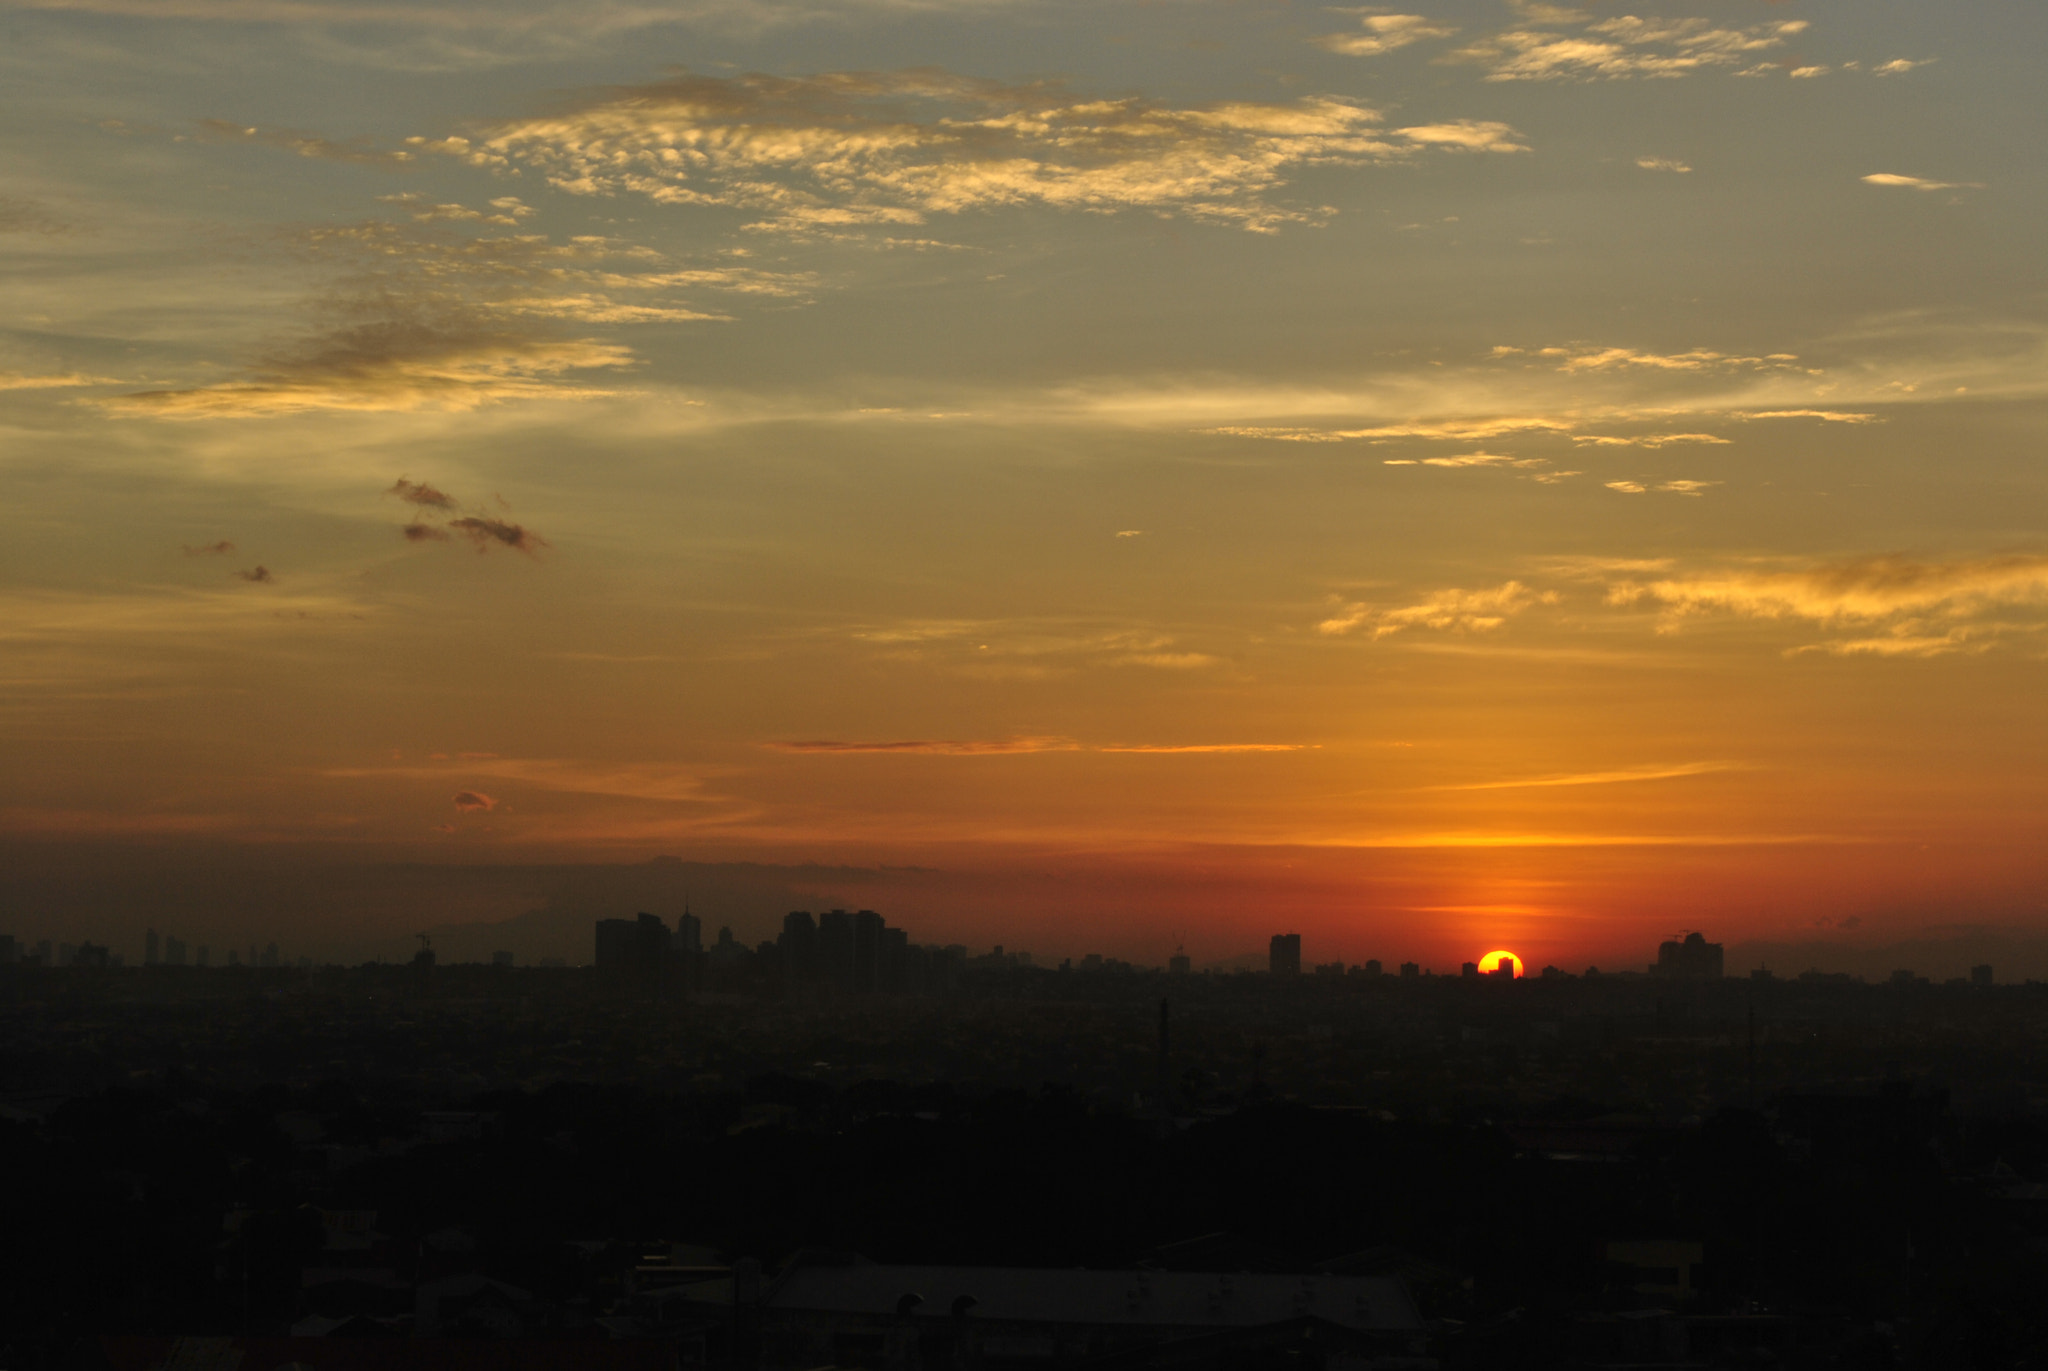 Photograph Antipolo Sunset by Innovatronix Tronix on 500px